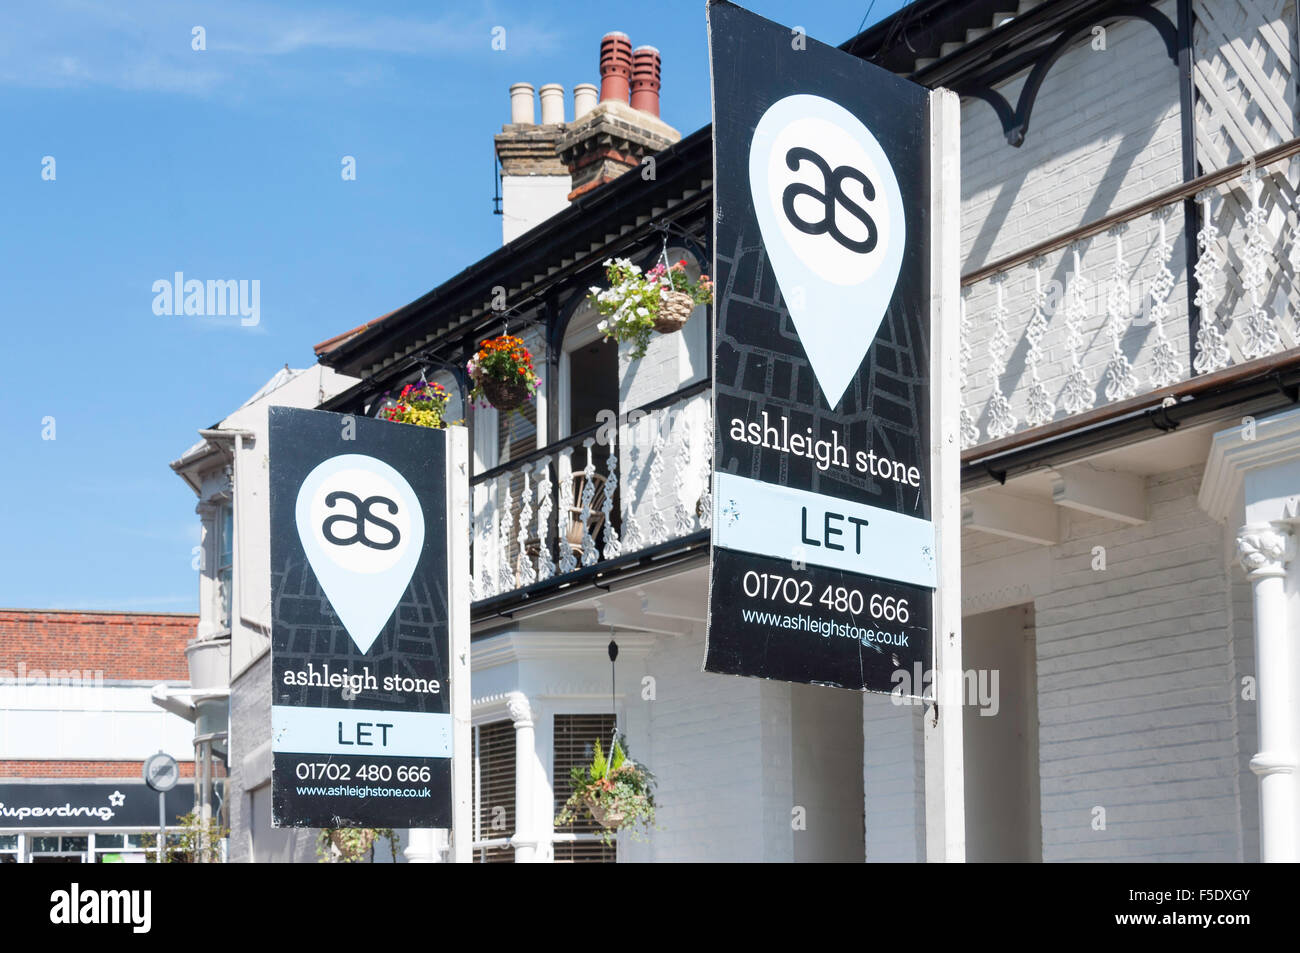 Let signs outside period house, Leigh Hill, Leigh-on-Sea, Essex, England, United Kingdom - Stock Image